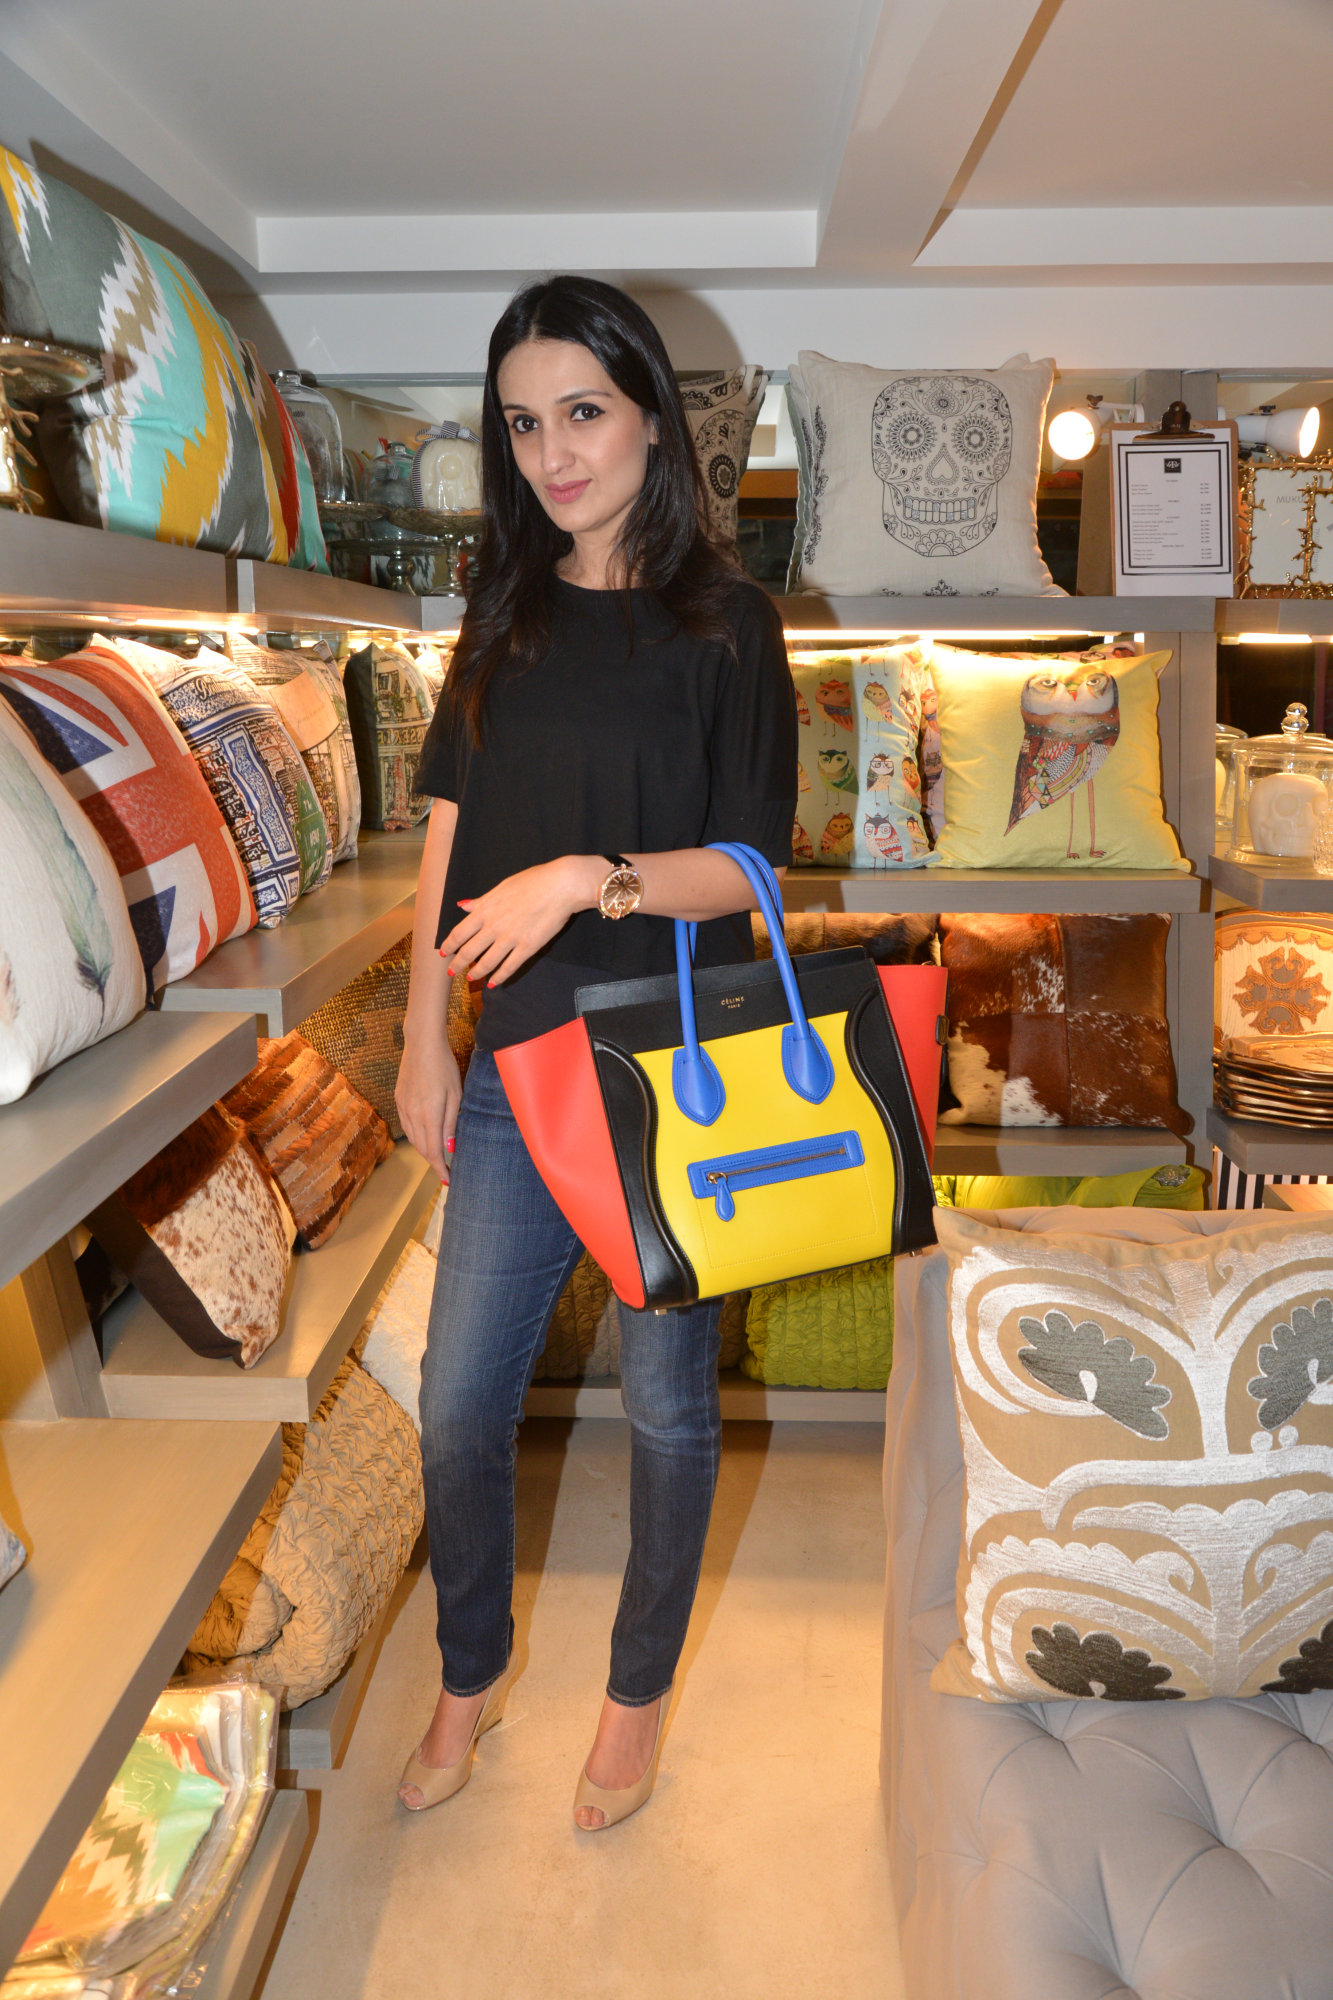 Anu Diwan carrying a Celine tote